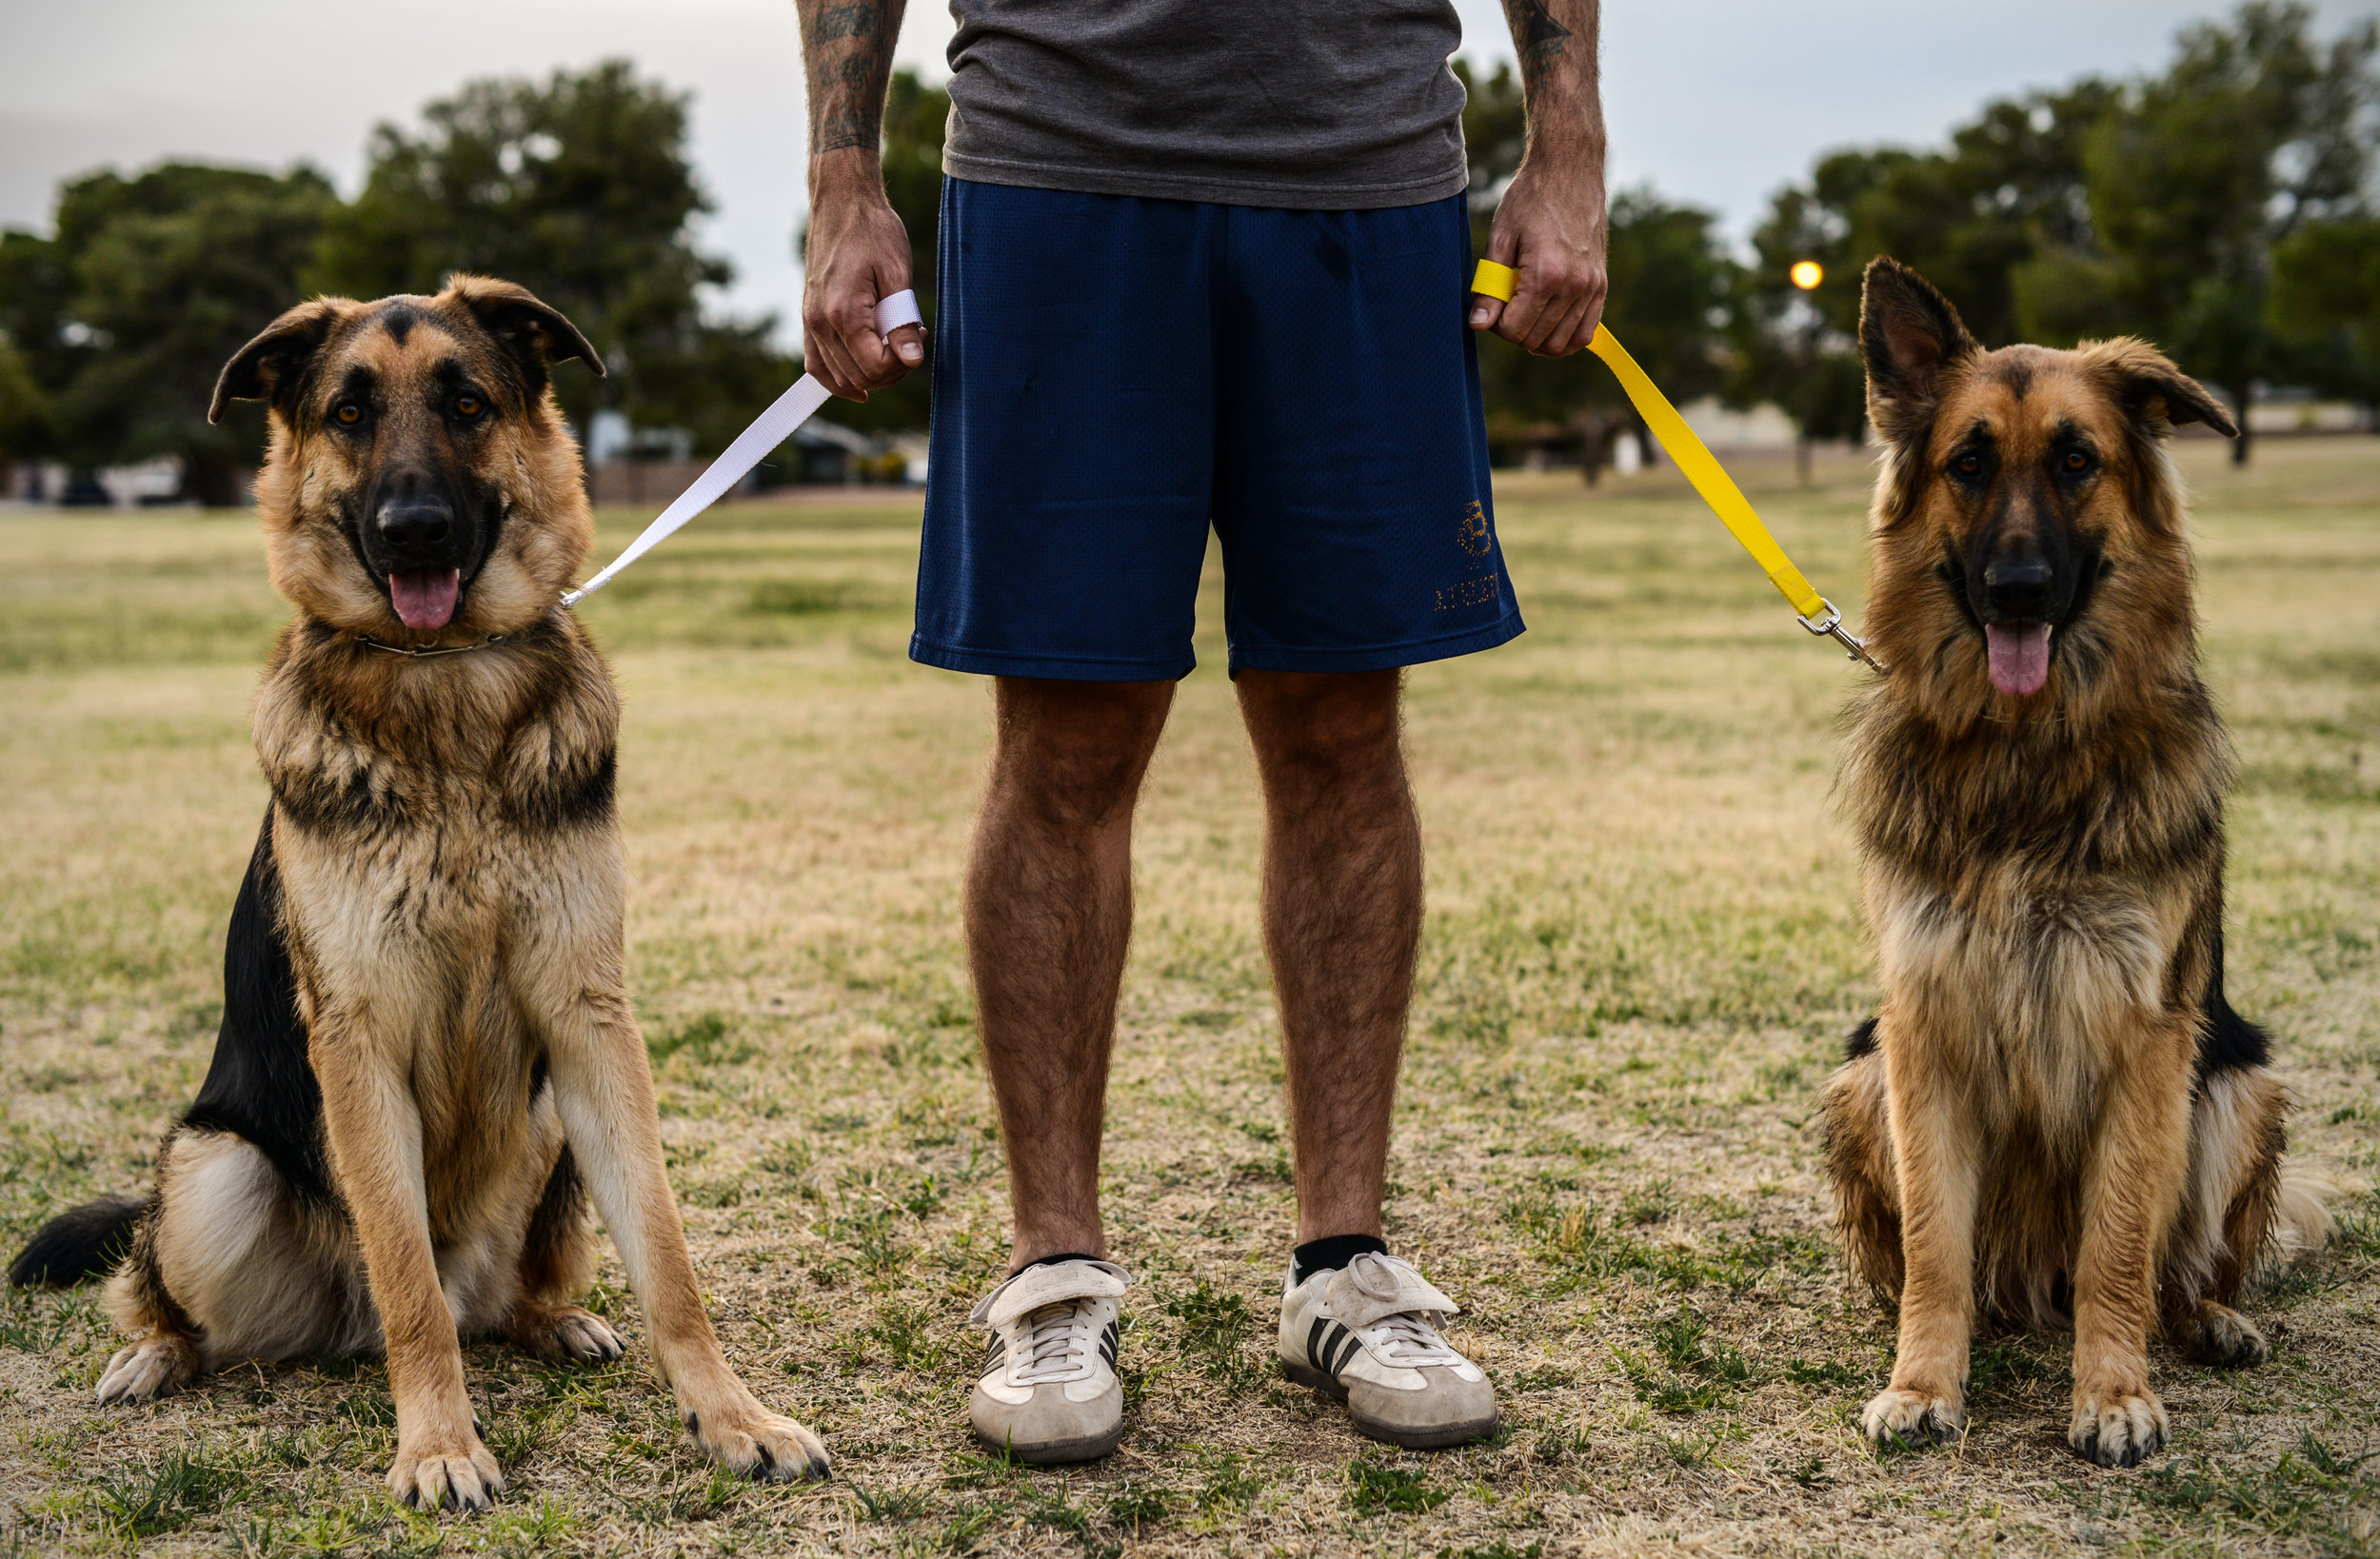 Trip Less Trainer makes it easy to control even the biggest, most challenging dogs.